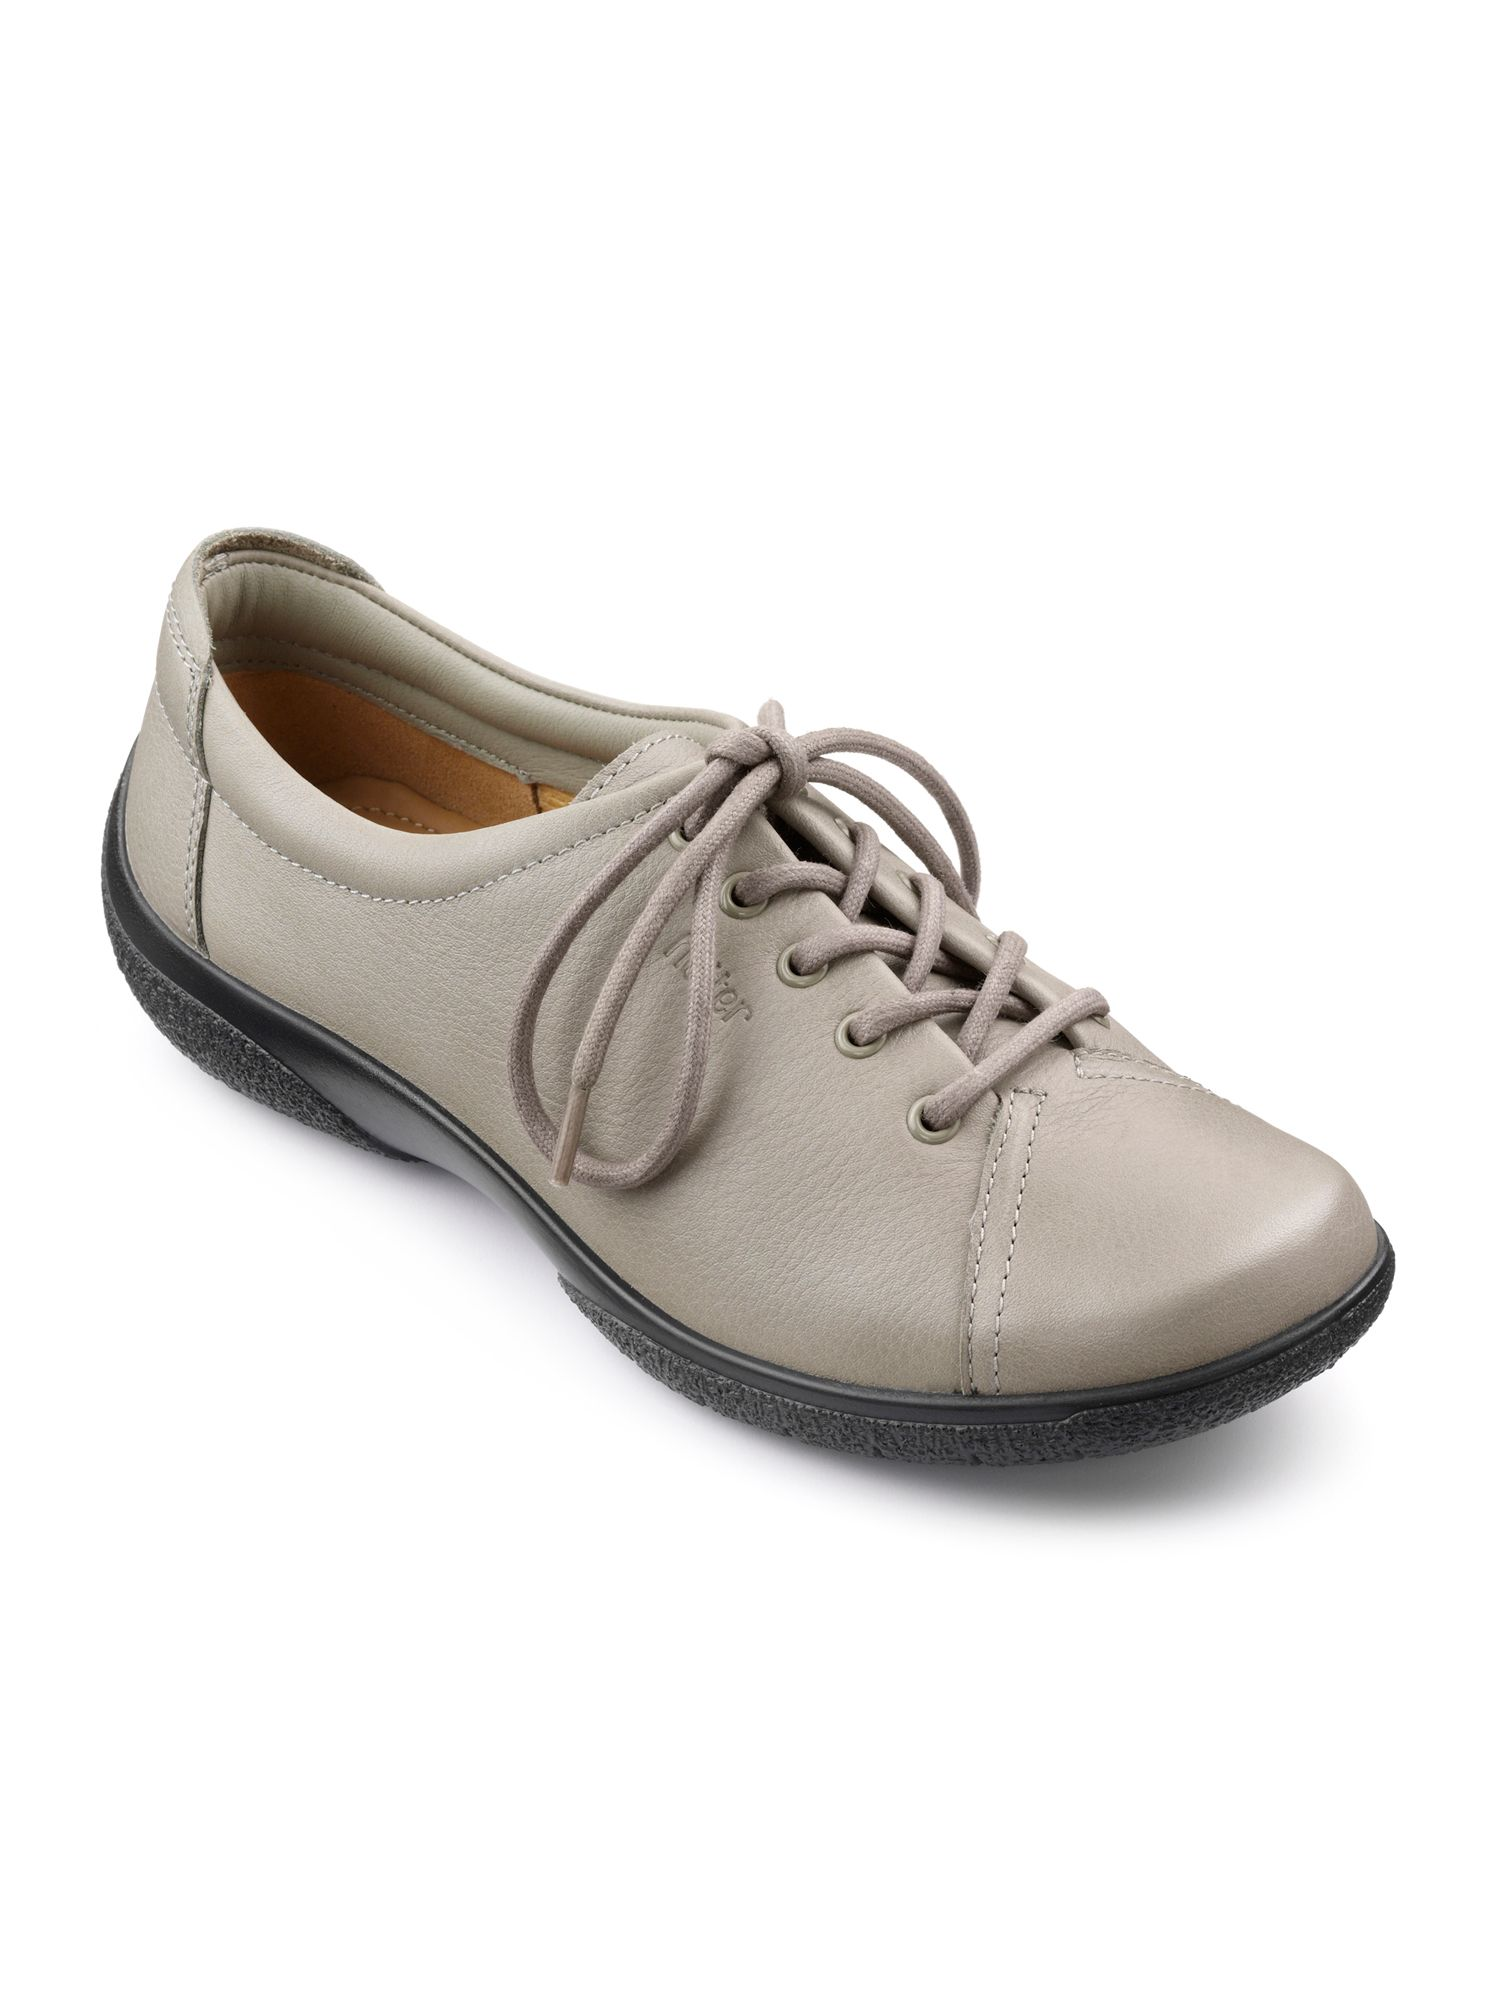 Hotter Dew Original Extra Wide Shoes, Putty